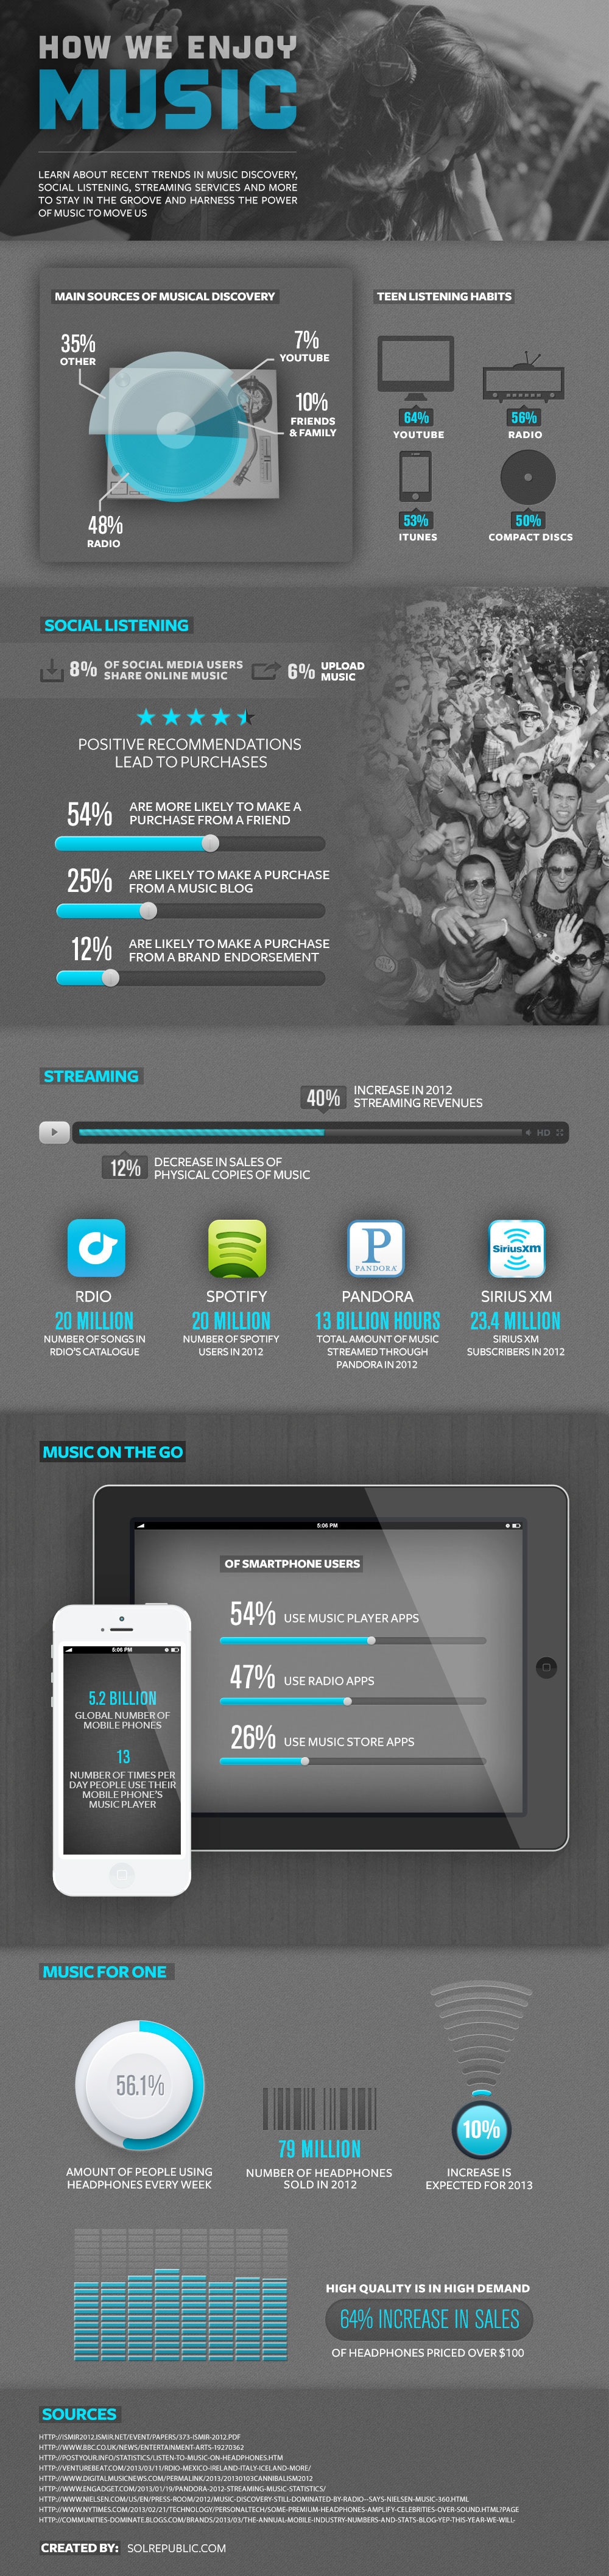 Infographic - Social Media & Music Discovery